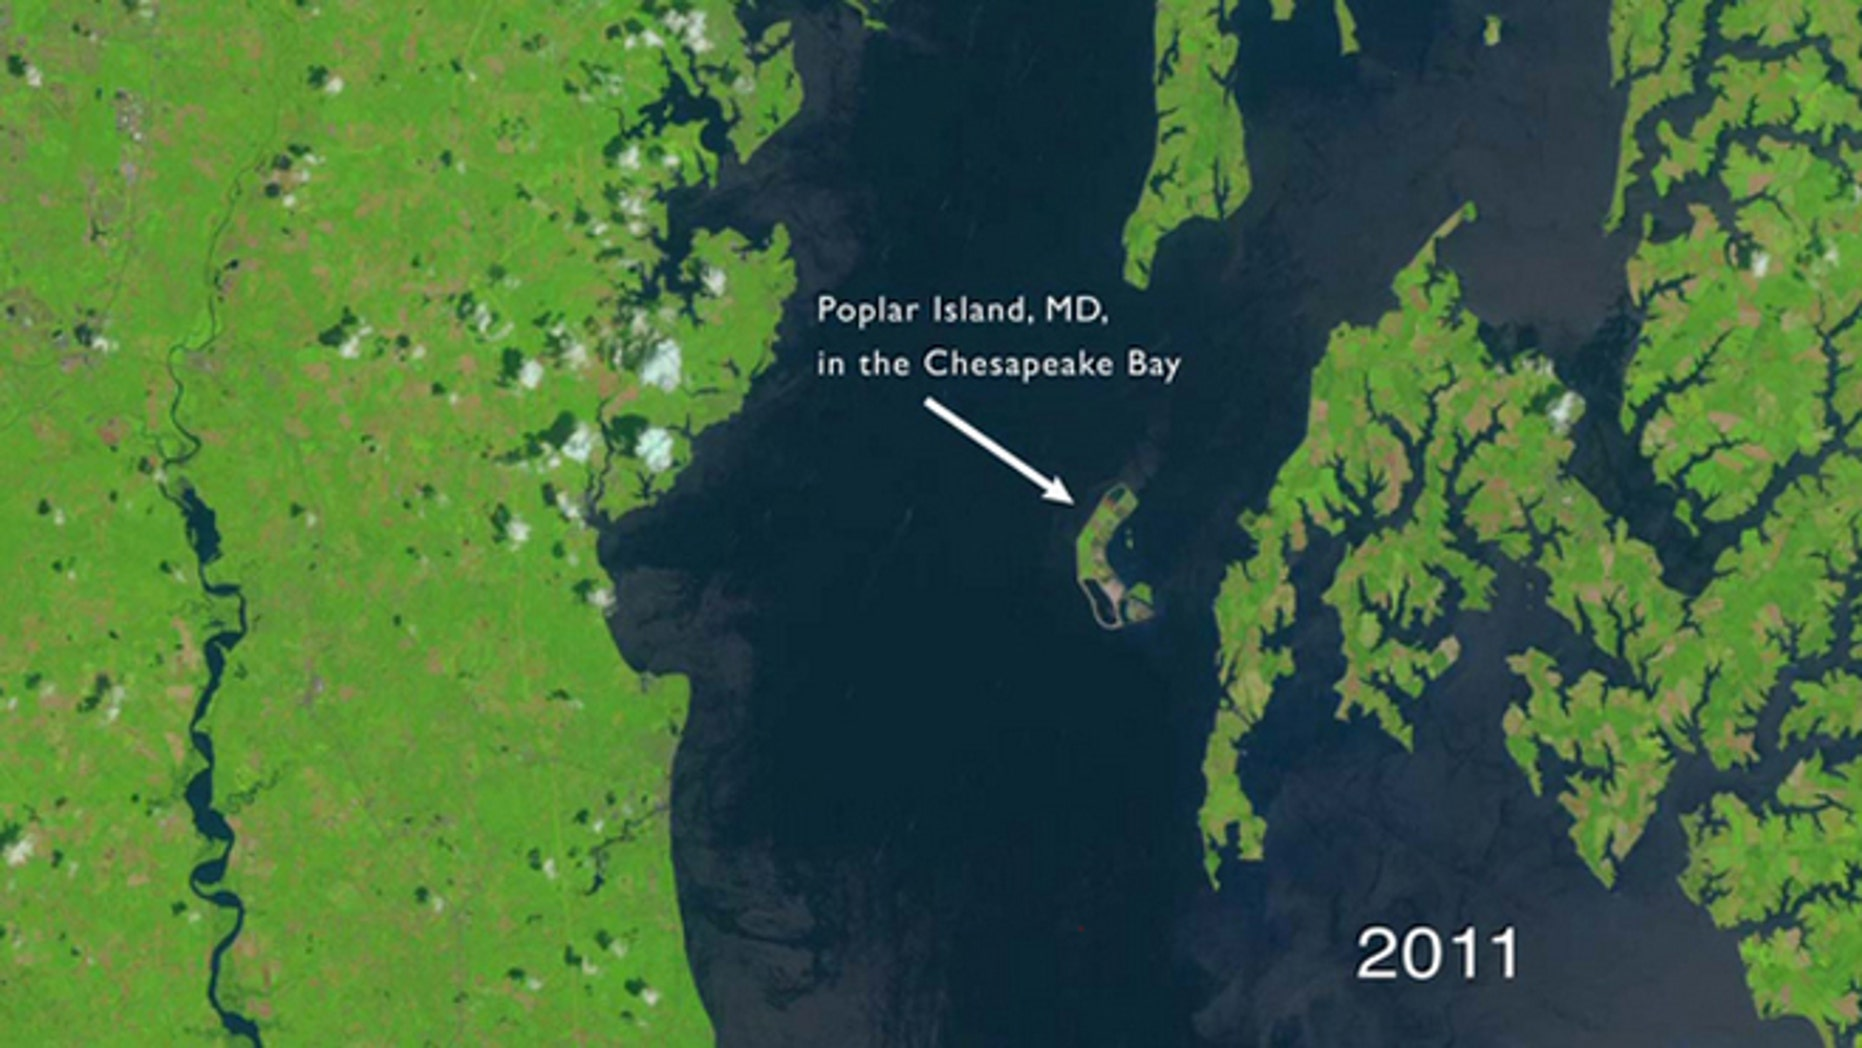 This still from a NASA video shows the view from space of Poplar Island, Md., in Chesapeake Bay off the Maryland Coast as seen by a Landsat satellite in 2011.